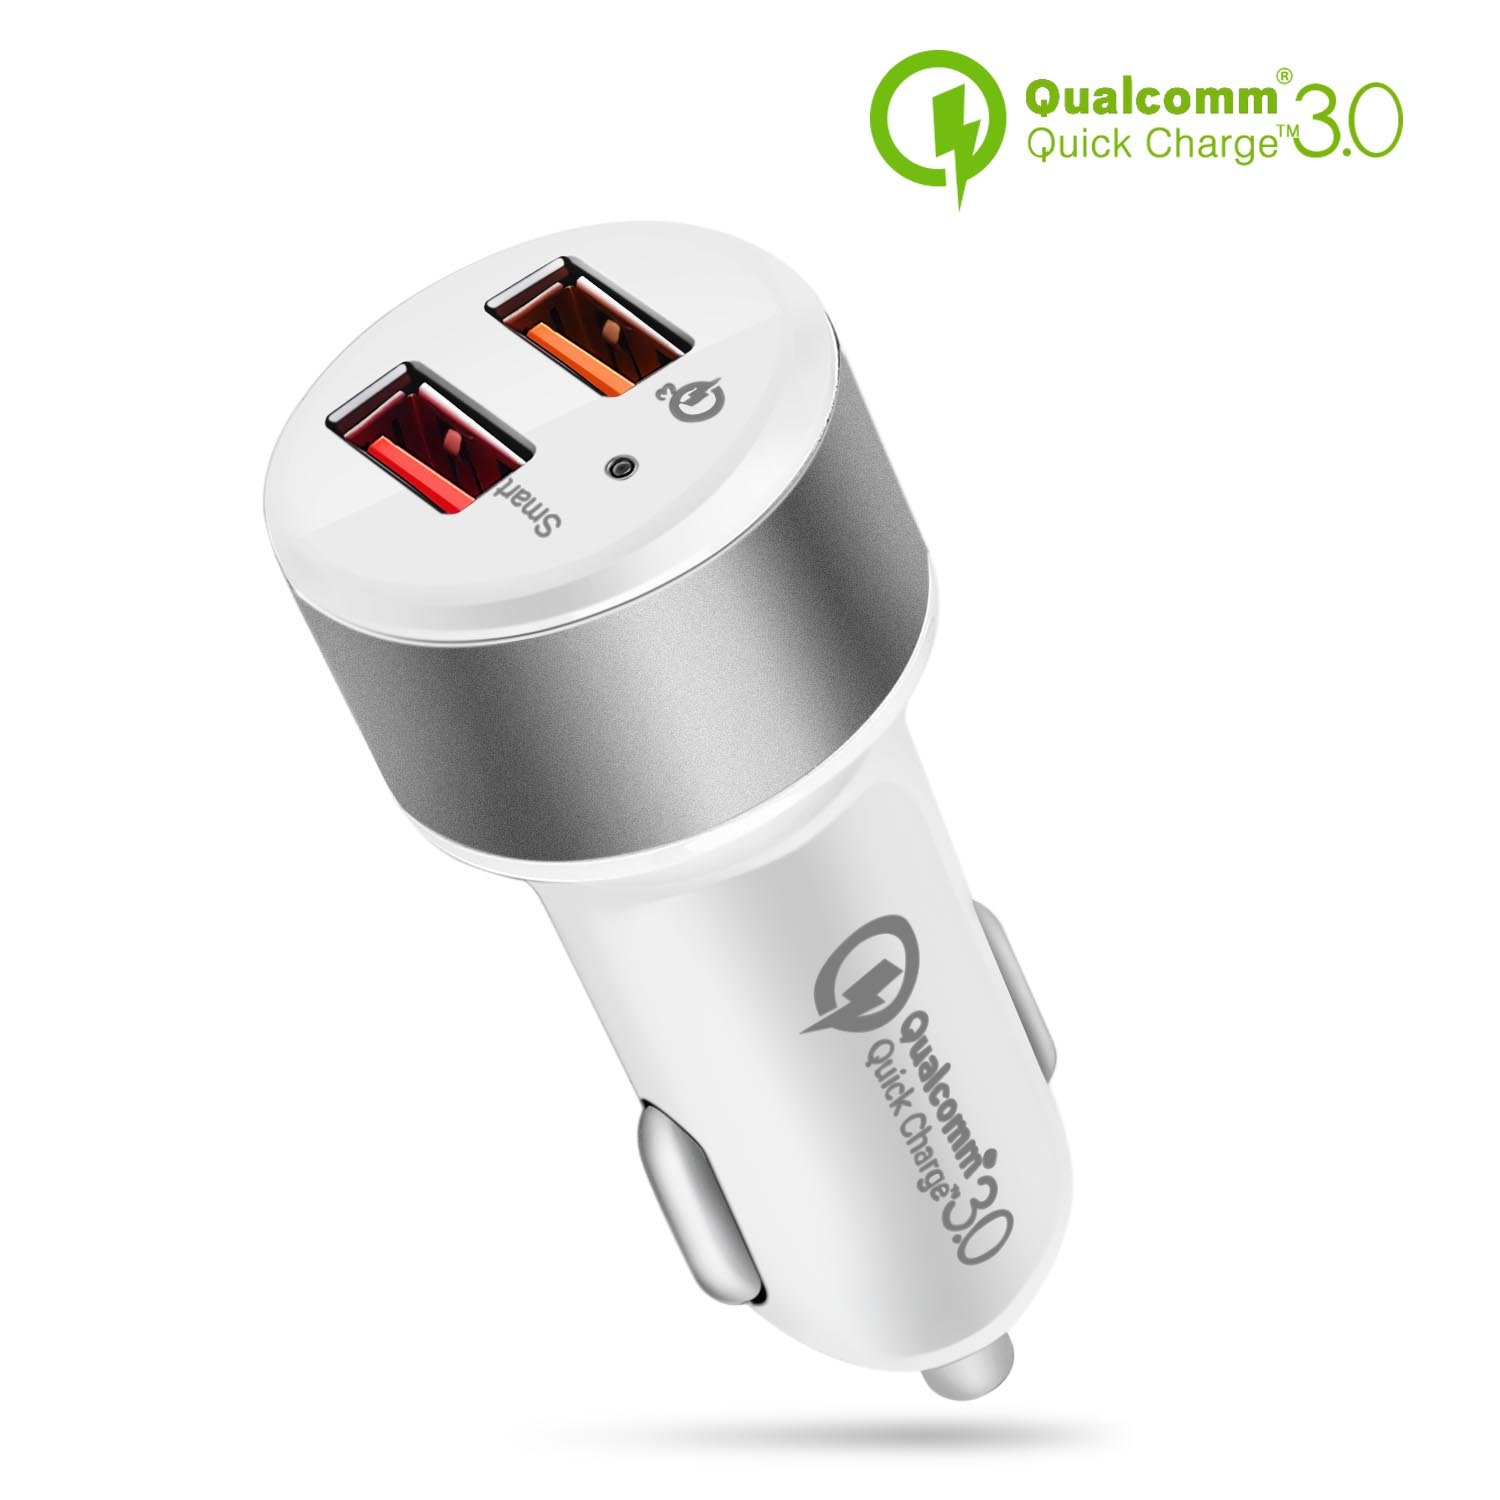 TNP Dual USB Port Car Charger with Quick Charge 3.0 Smart Fast Charge Port Power Adapter for iPhone X/8/7/Plus, iPad Pro/Air/Mini, Samsung Galaxy ...